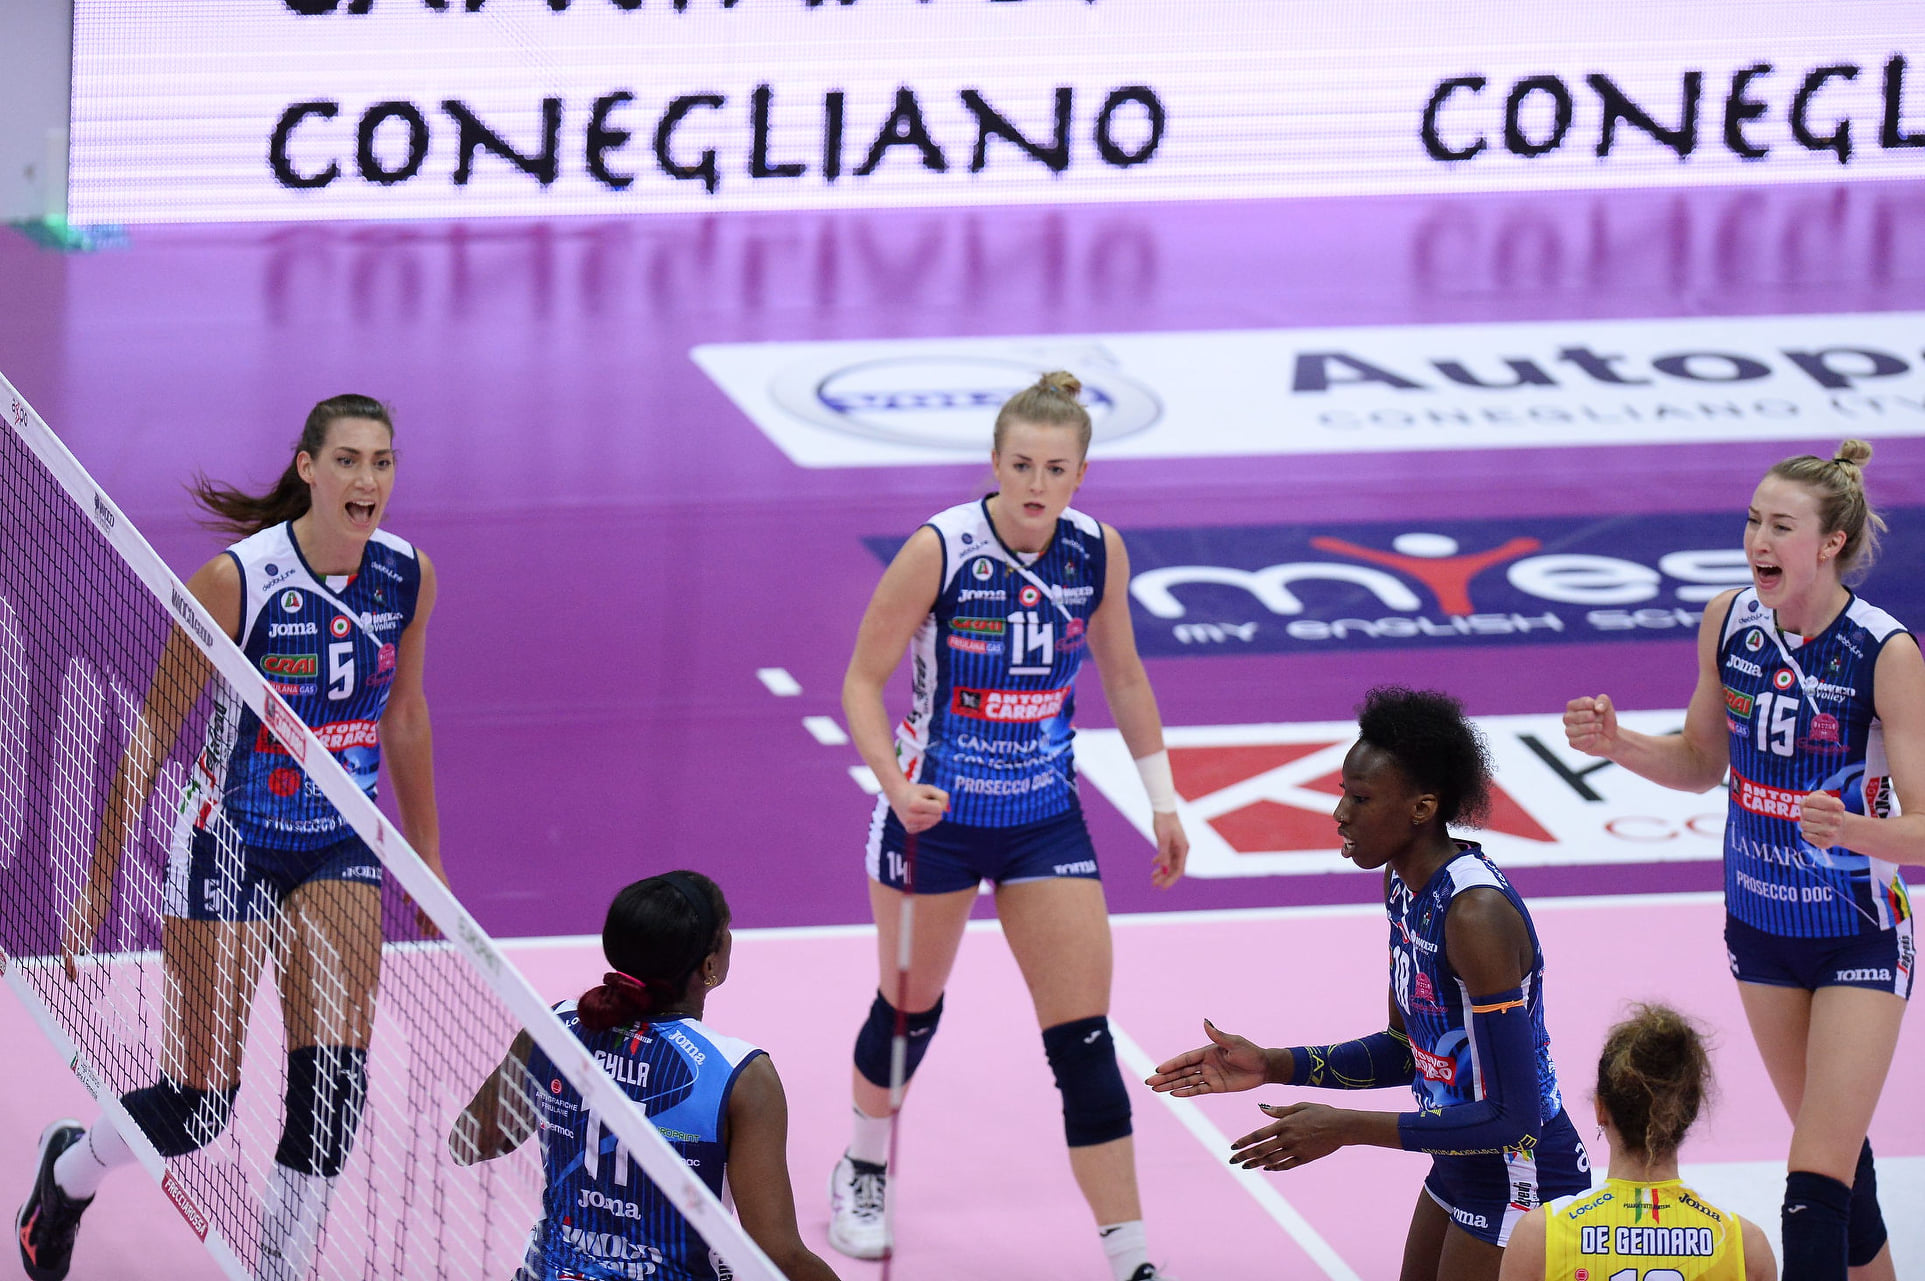 Imoco Volley Conegliano vs Savino Del Bene Scandicci